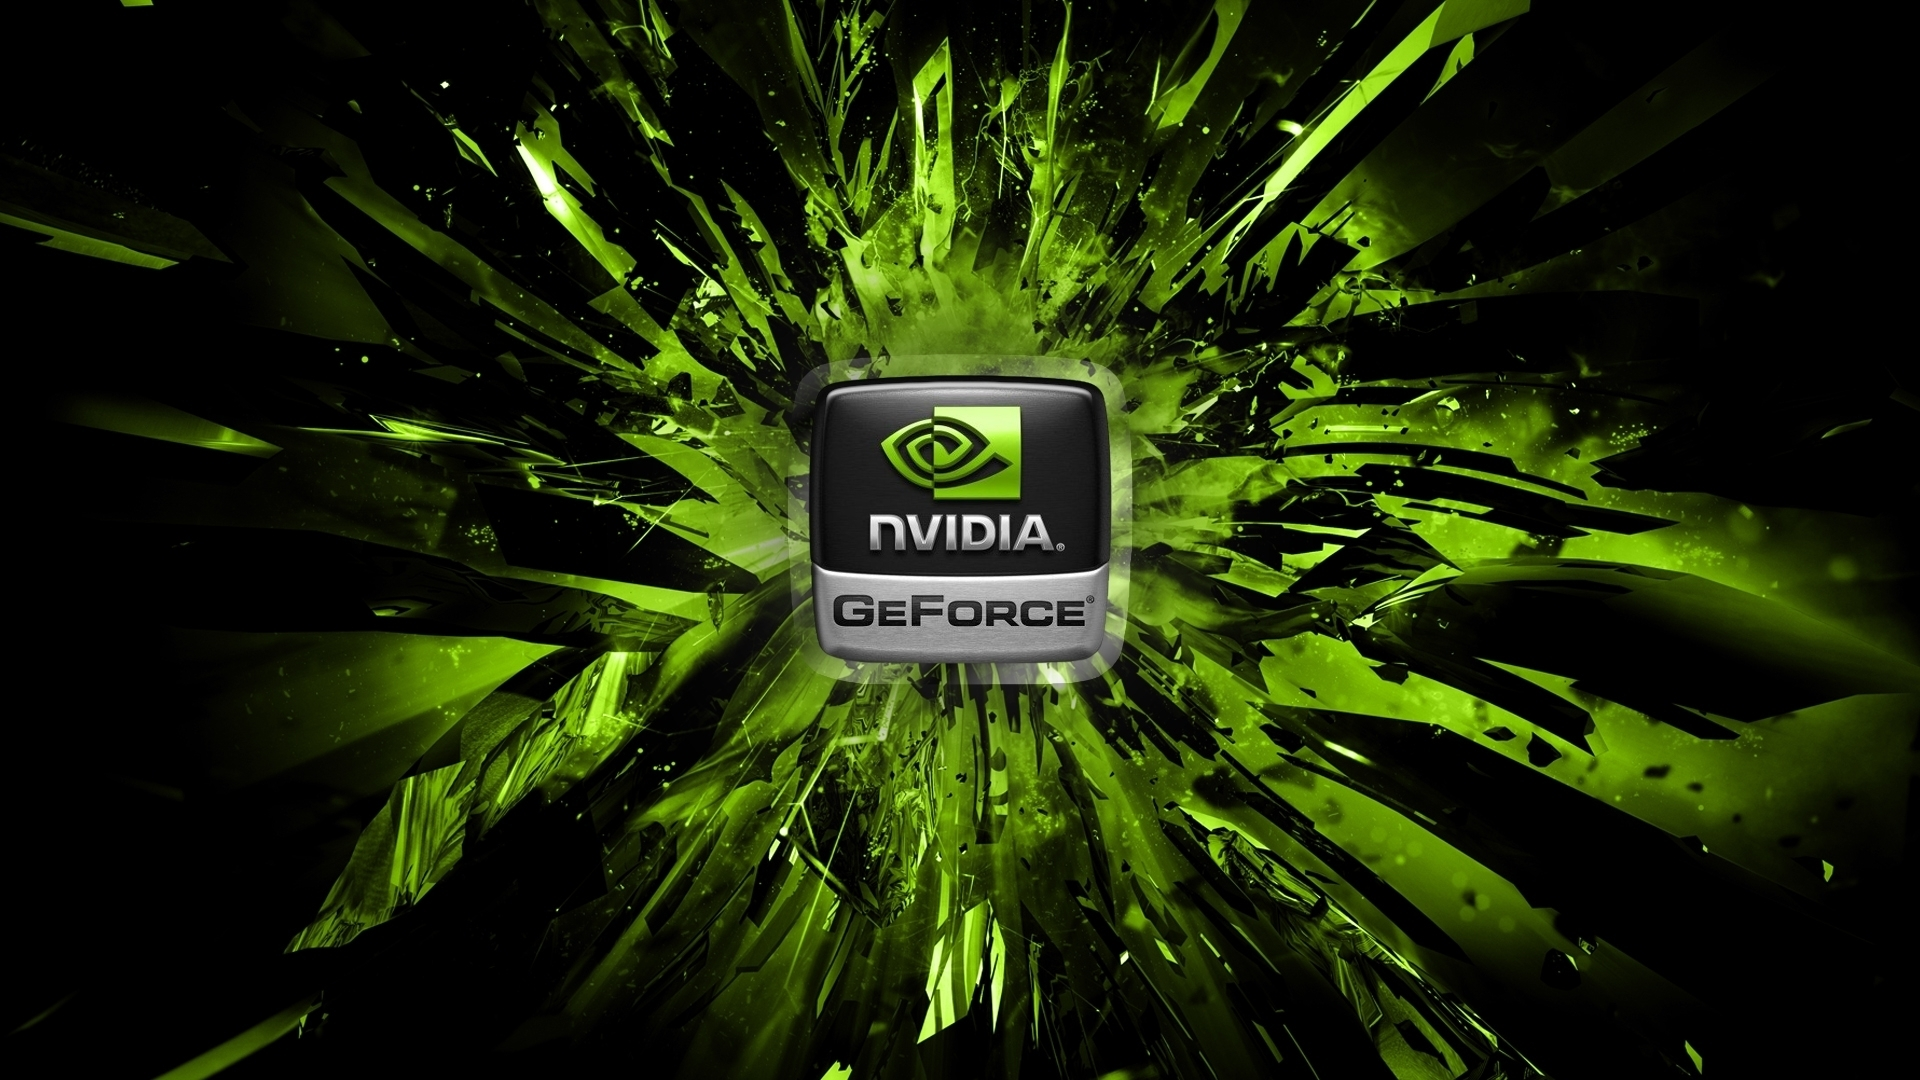 Geforce 4k Wallpapers For Your Desktop Or Mobile Screen Free